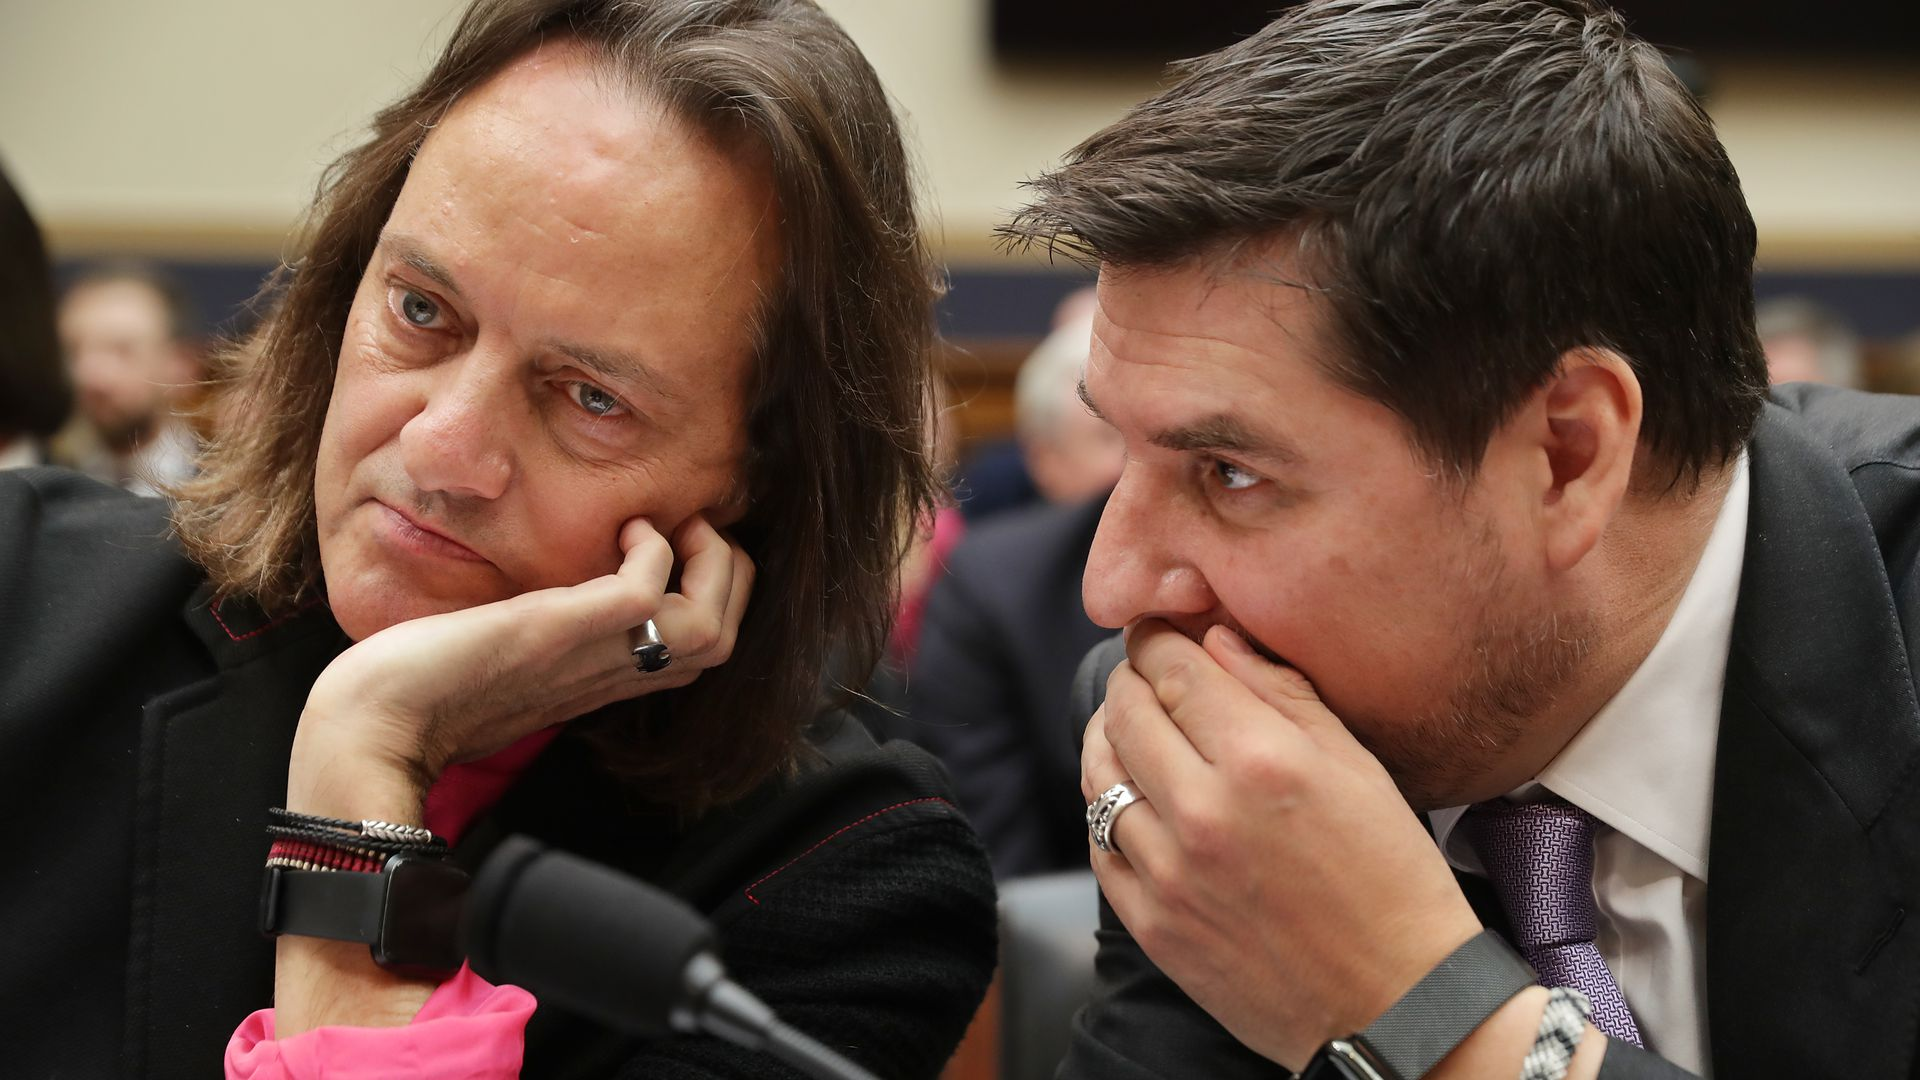 T-Mobile CEO John Legere and Executive Director of Sprint Marcelo Claure talk before testifying to the House Judiciary Committee